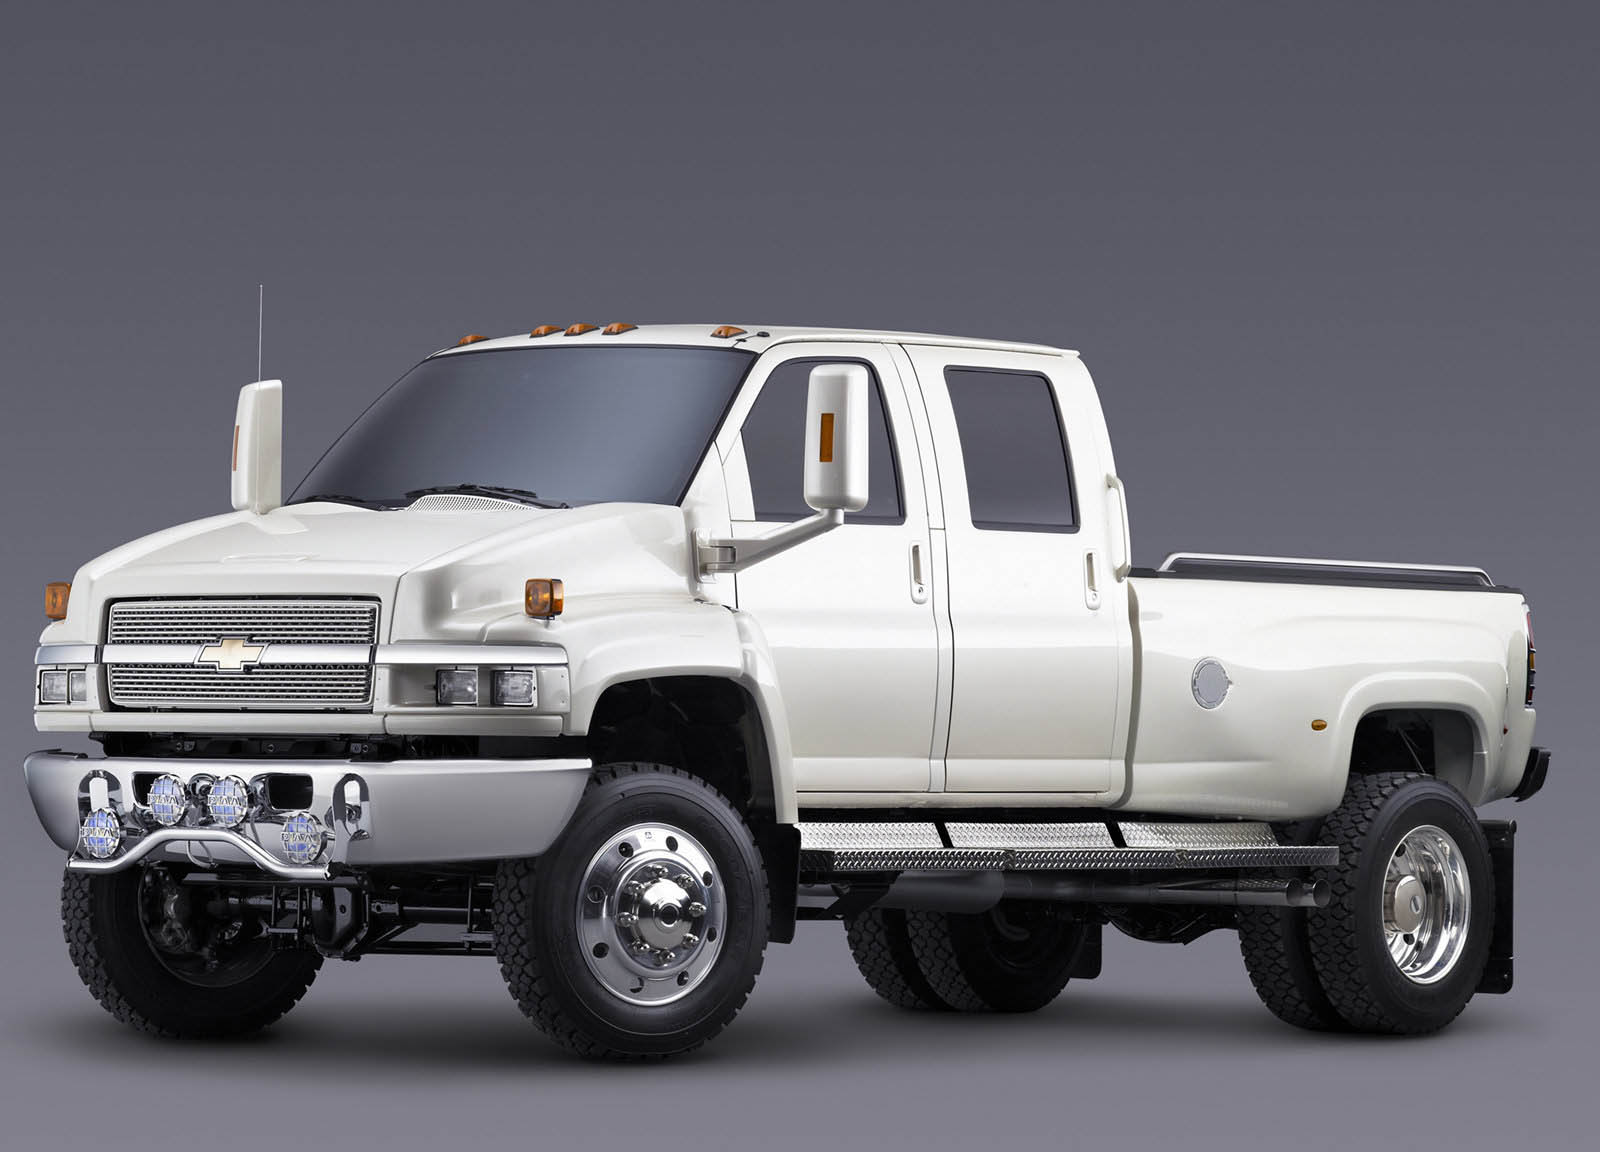 Chevy's Launching An Even More Heady-Duty Silverado 4500/5500 | Carscoops